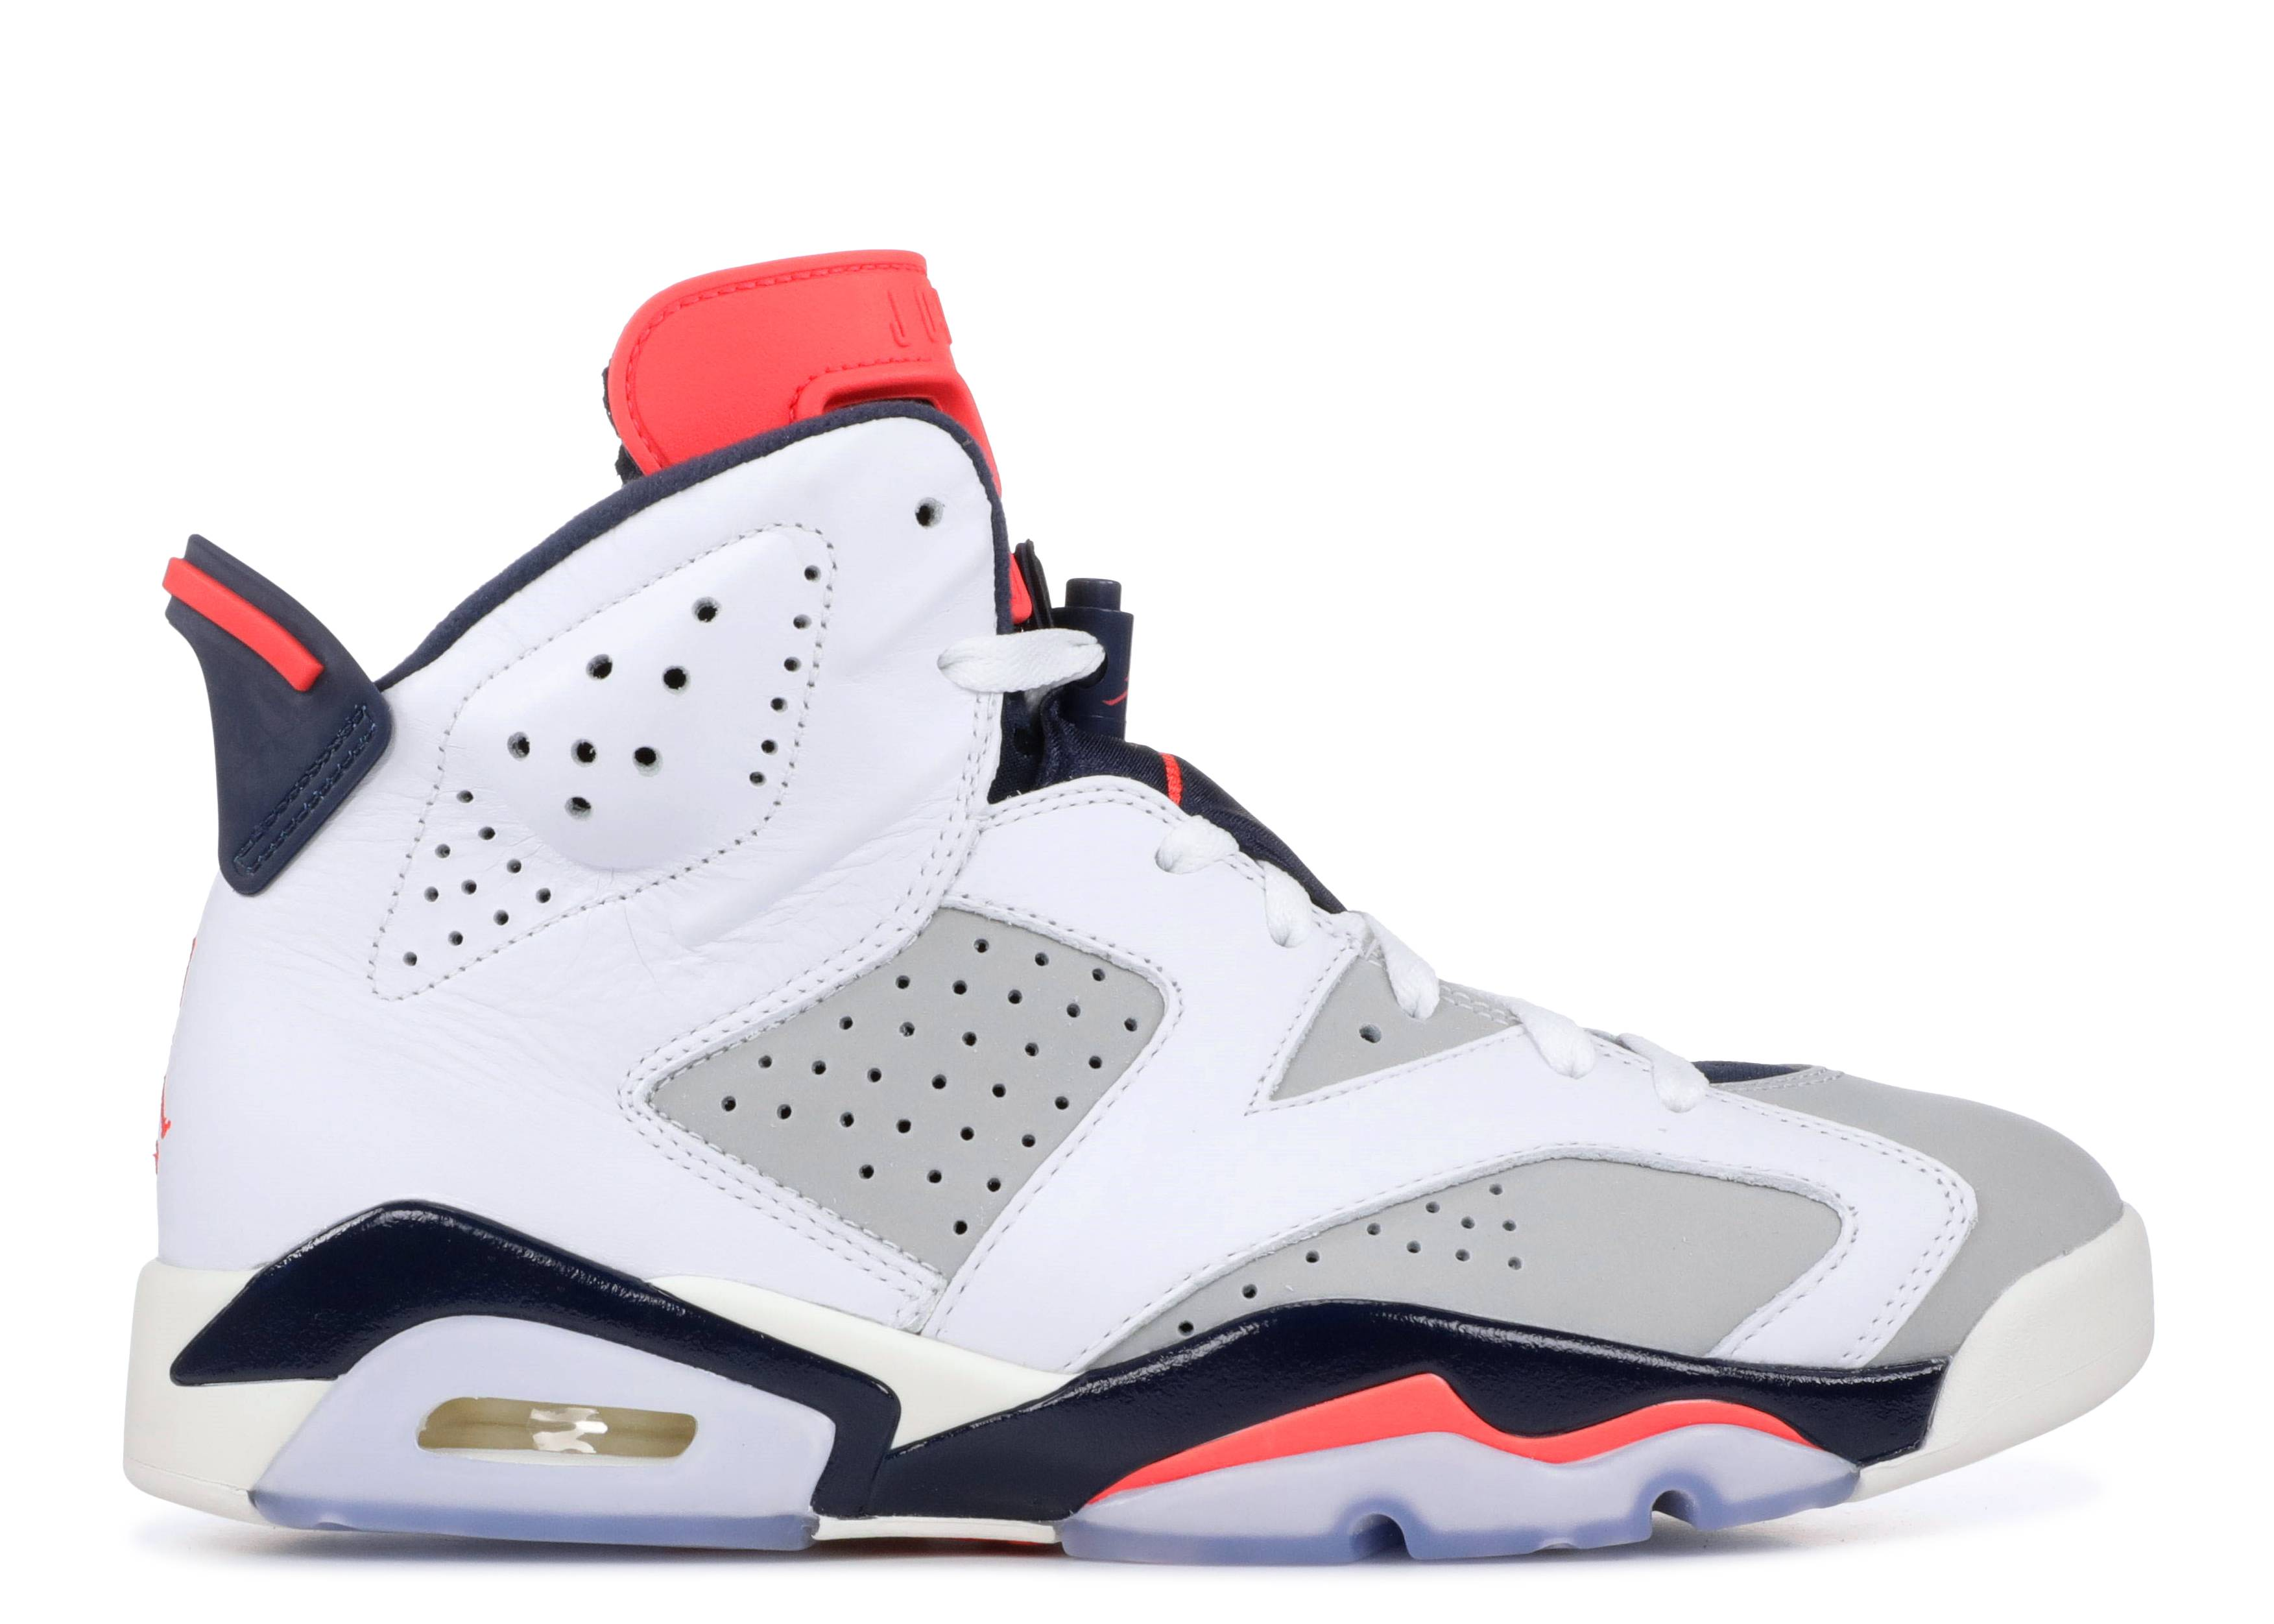 fb8ae24419d Air Jordan 6 (VI) Shoes - Nike | Flight Club